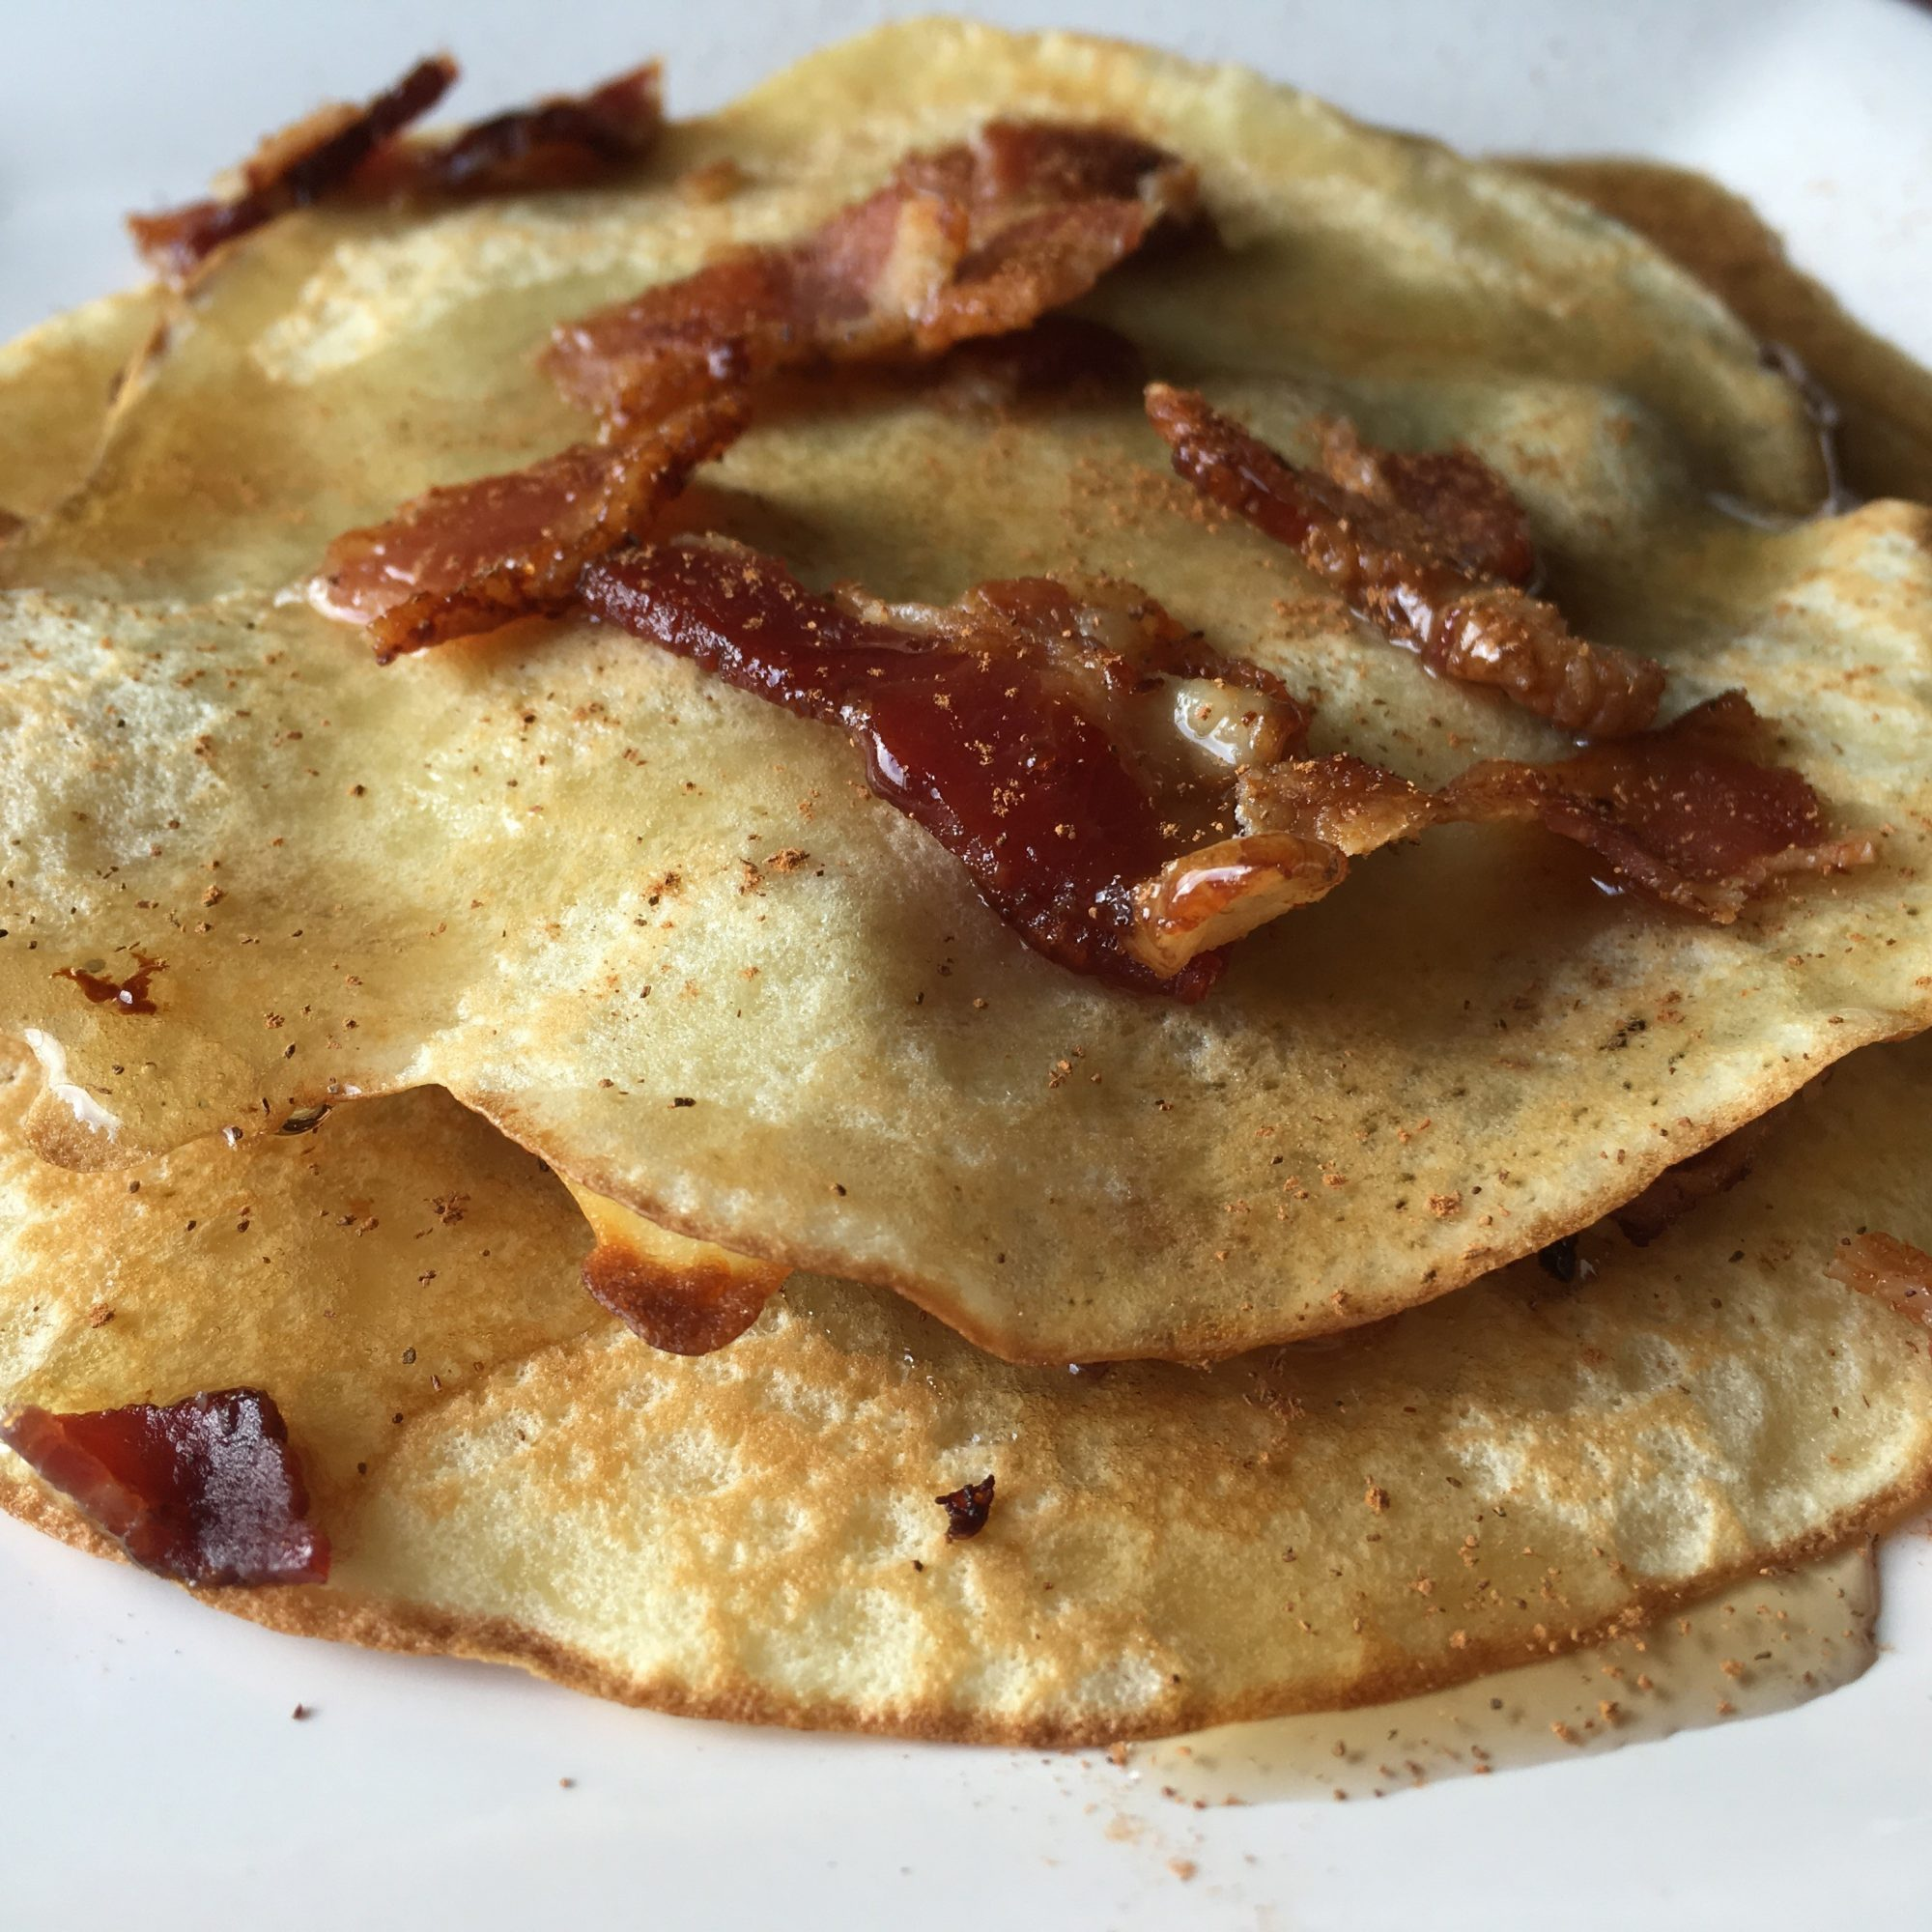 Maple Bacon Crepe Stack on a white plate